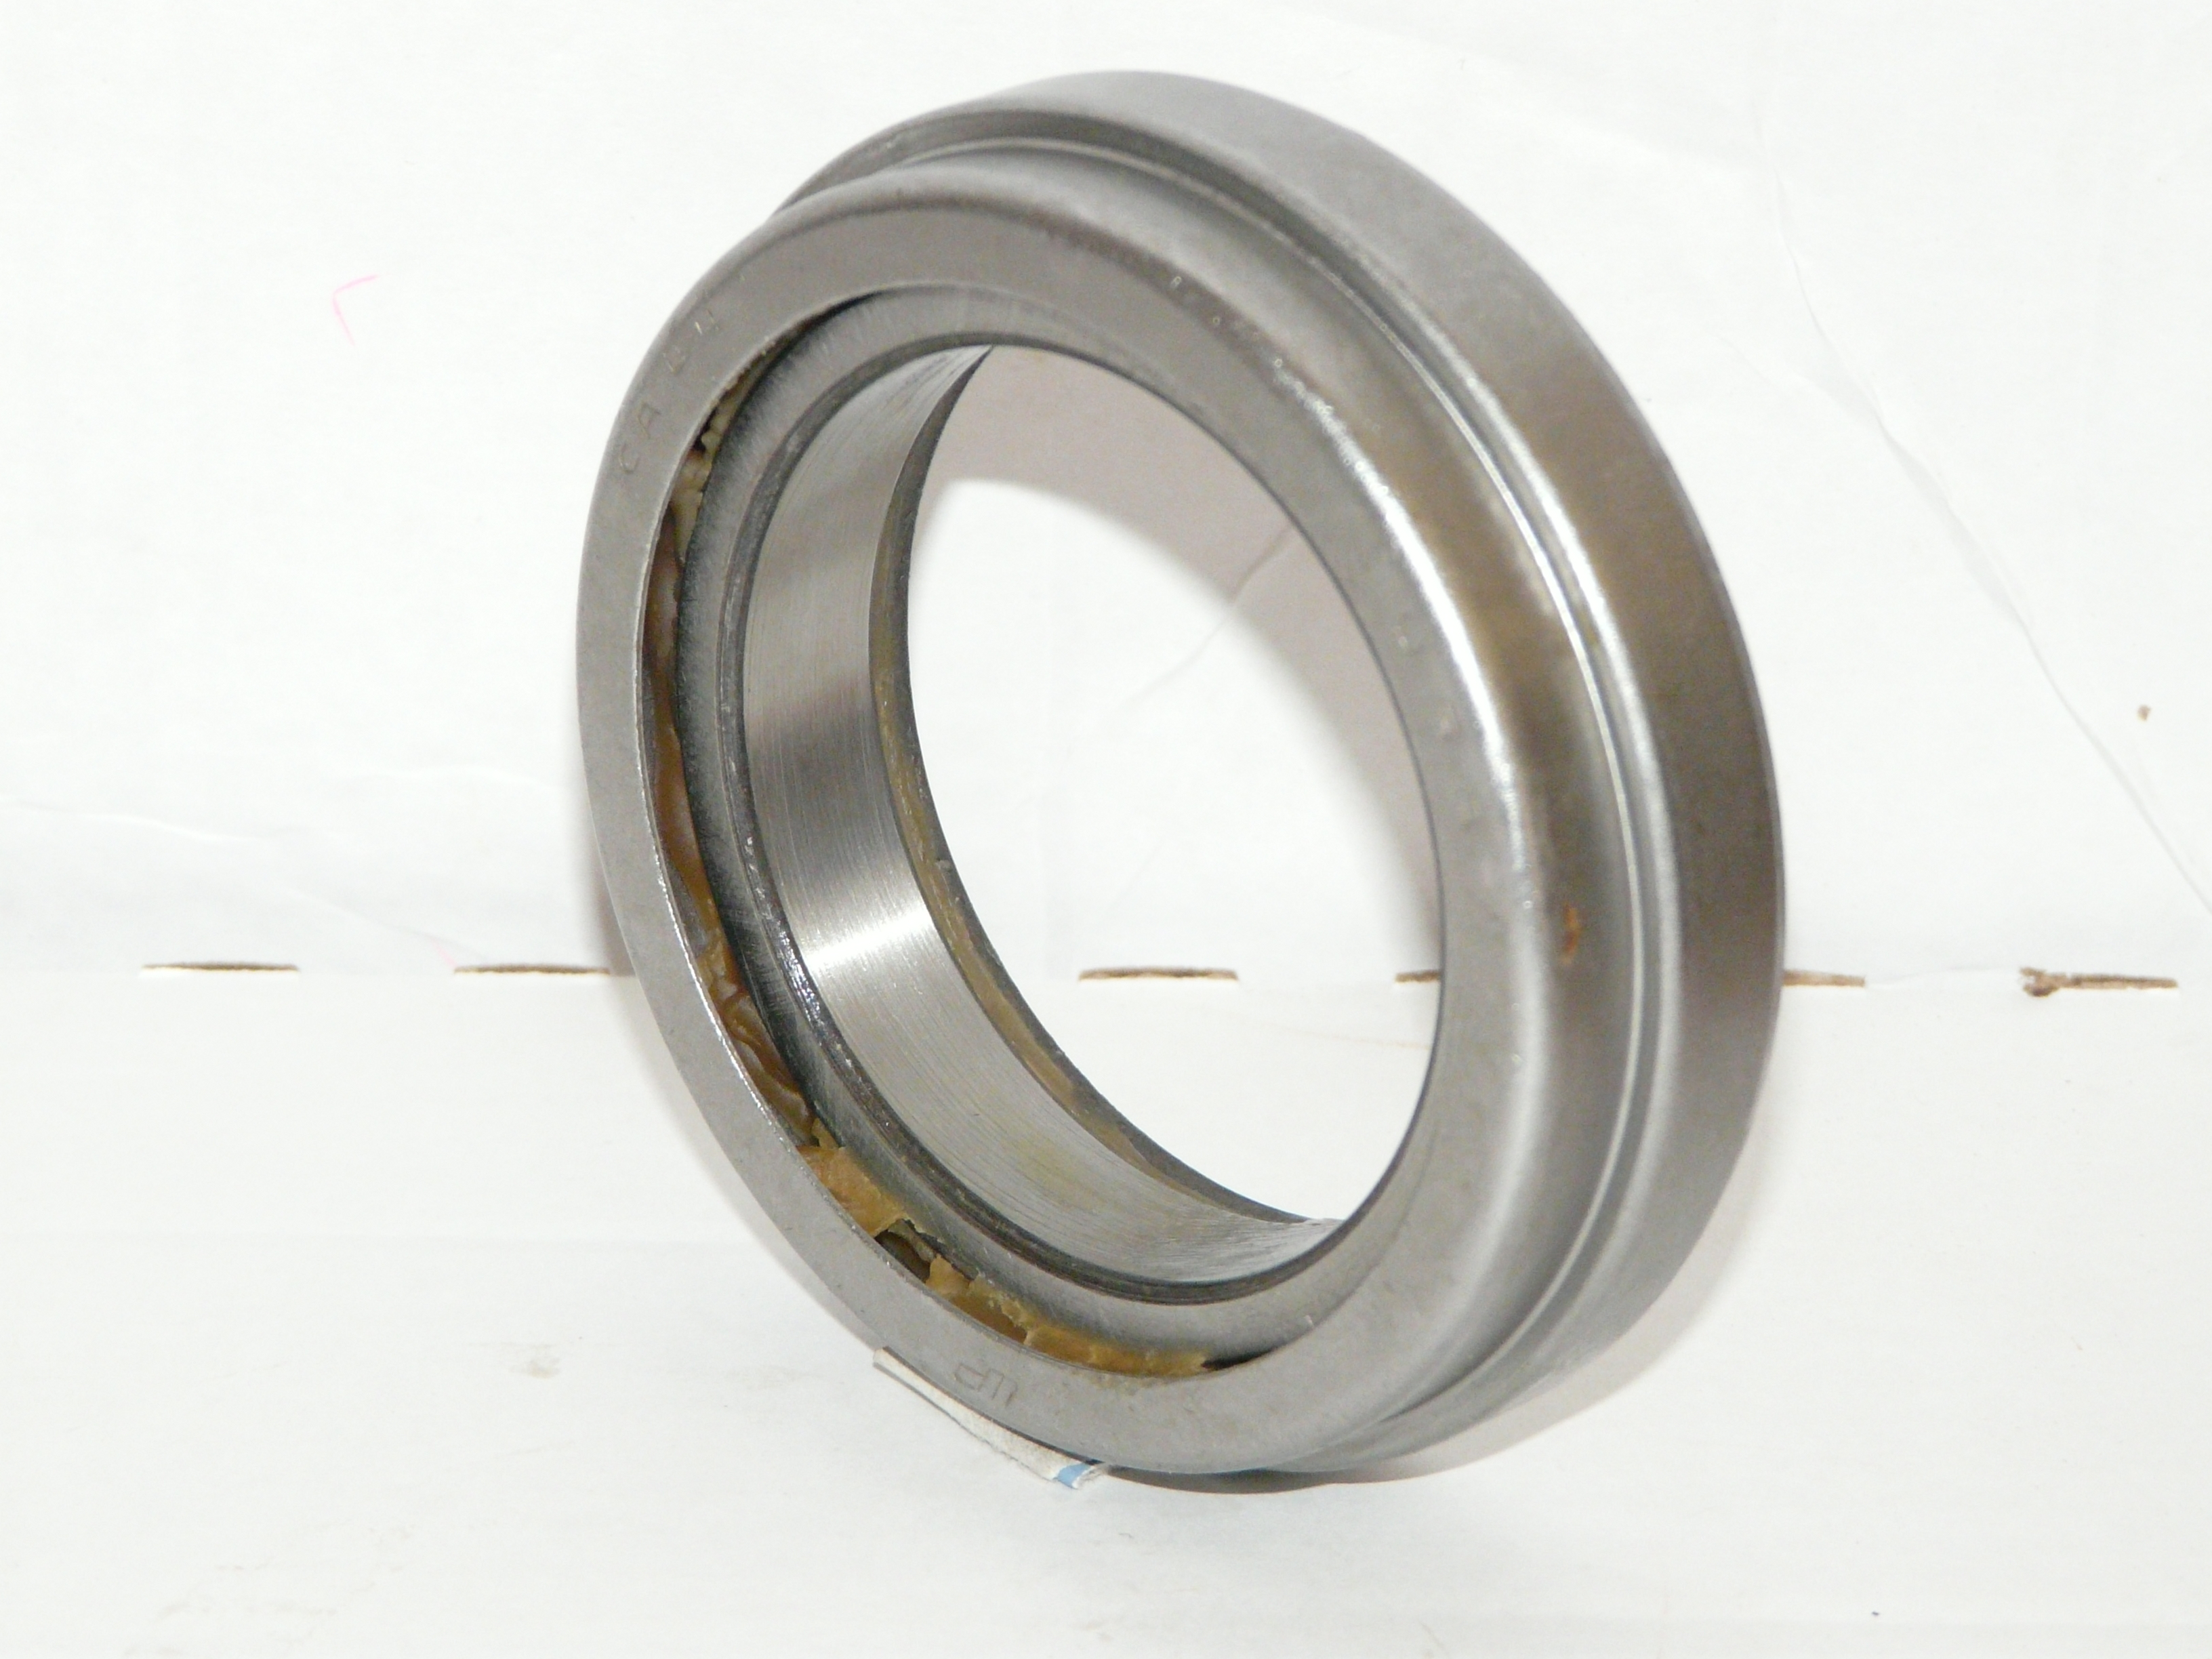 Typical Clutch Release Bearing